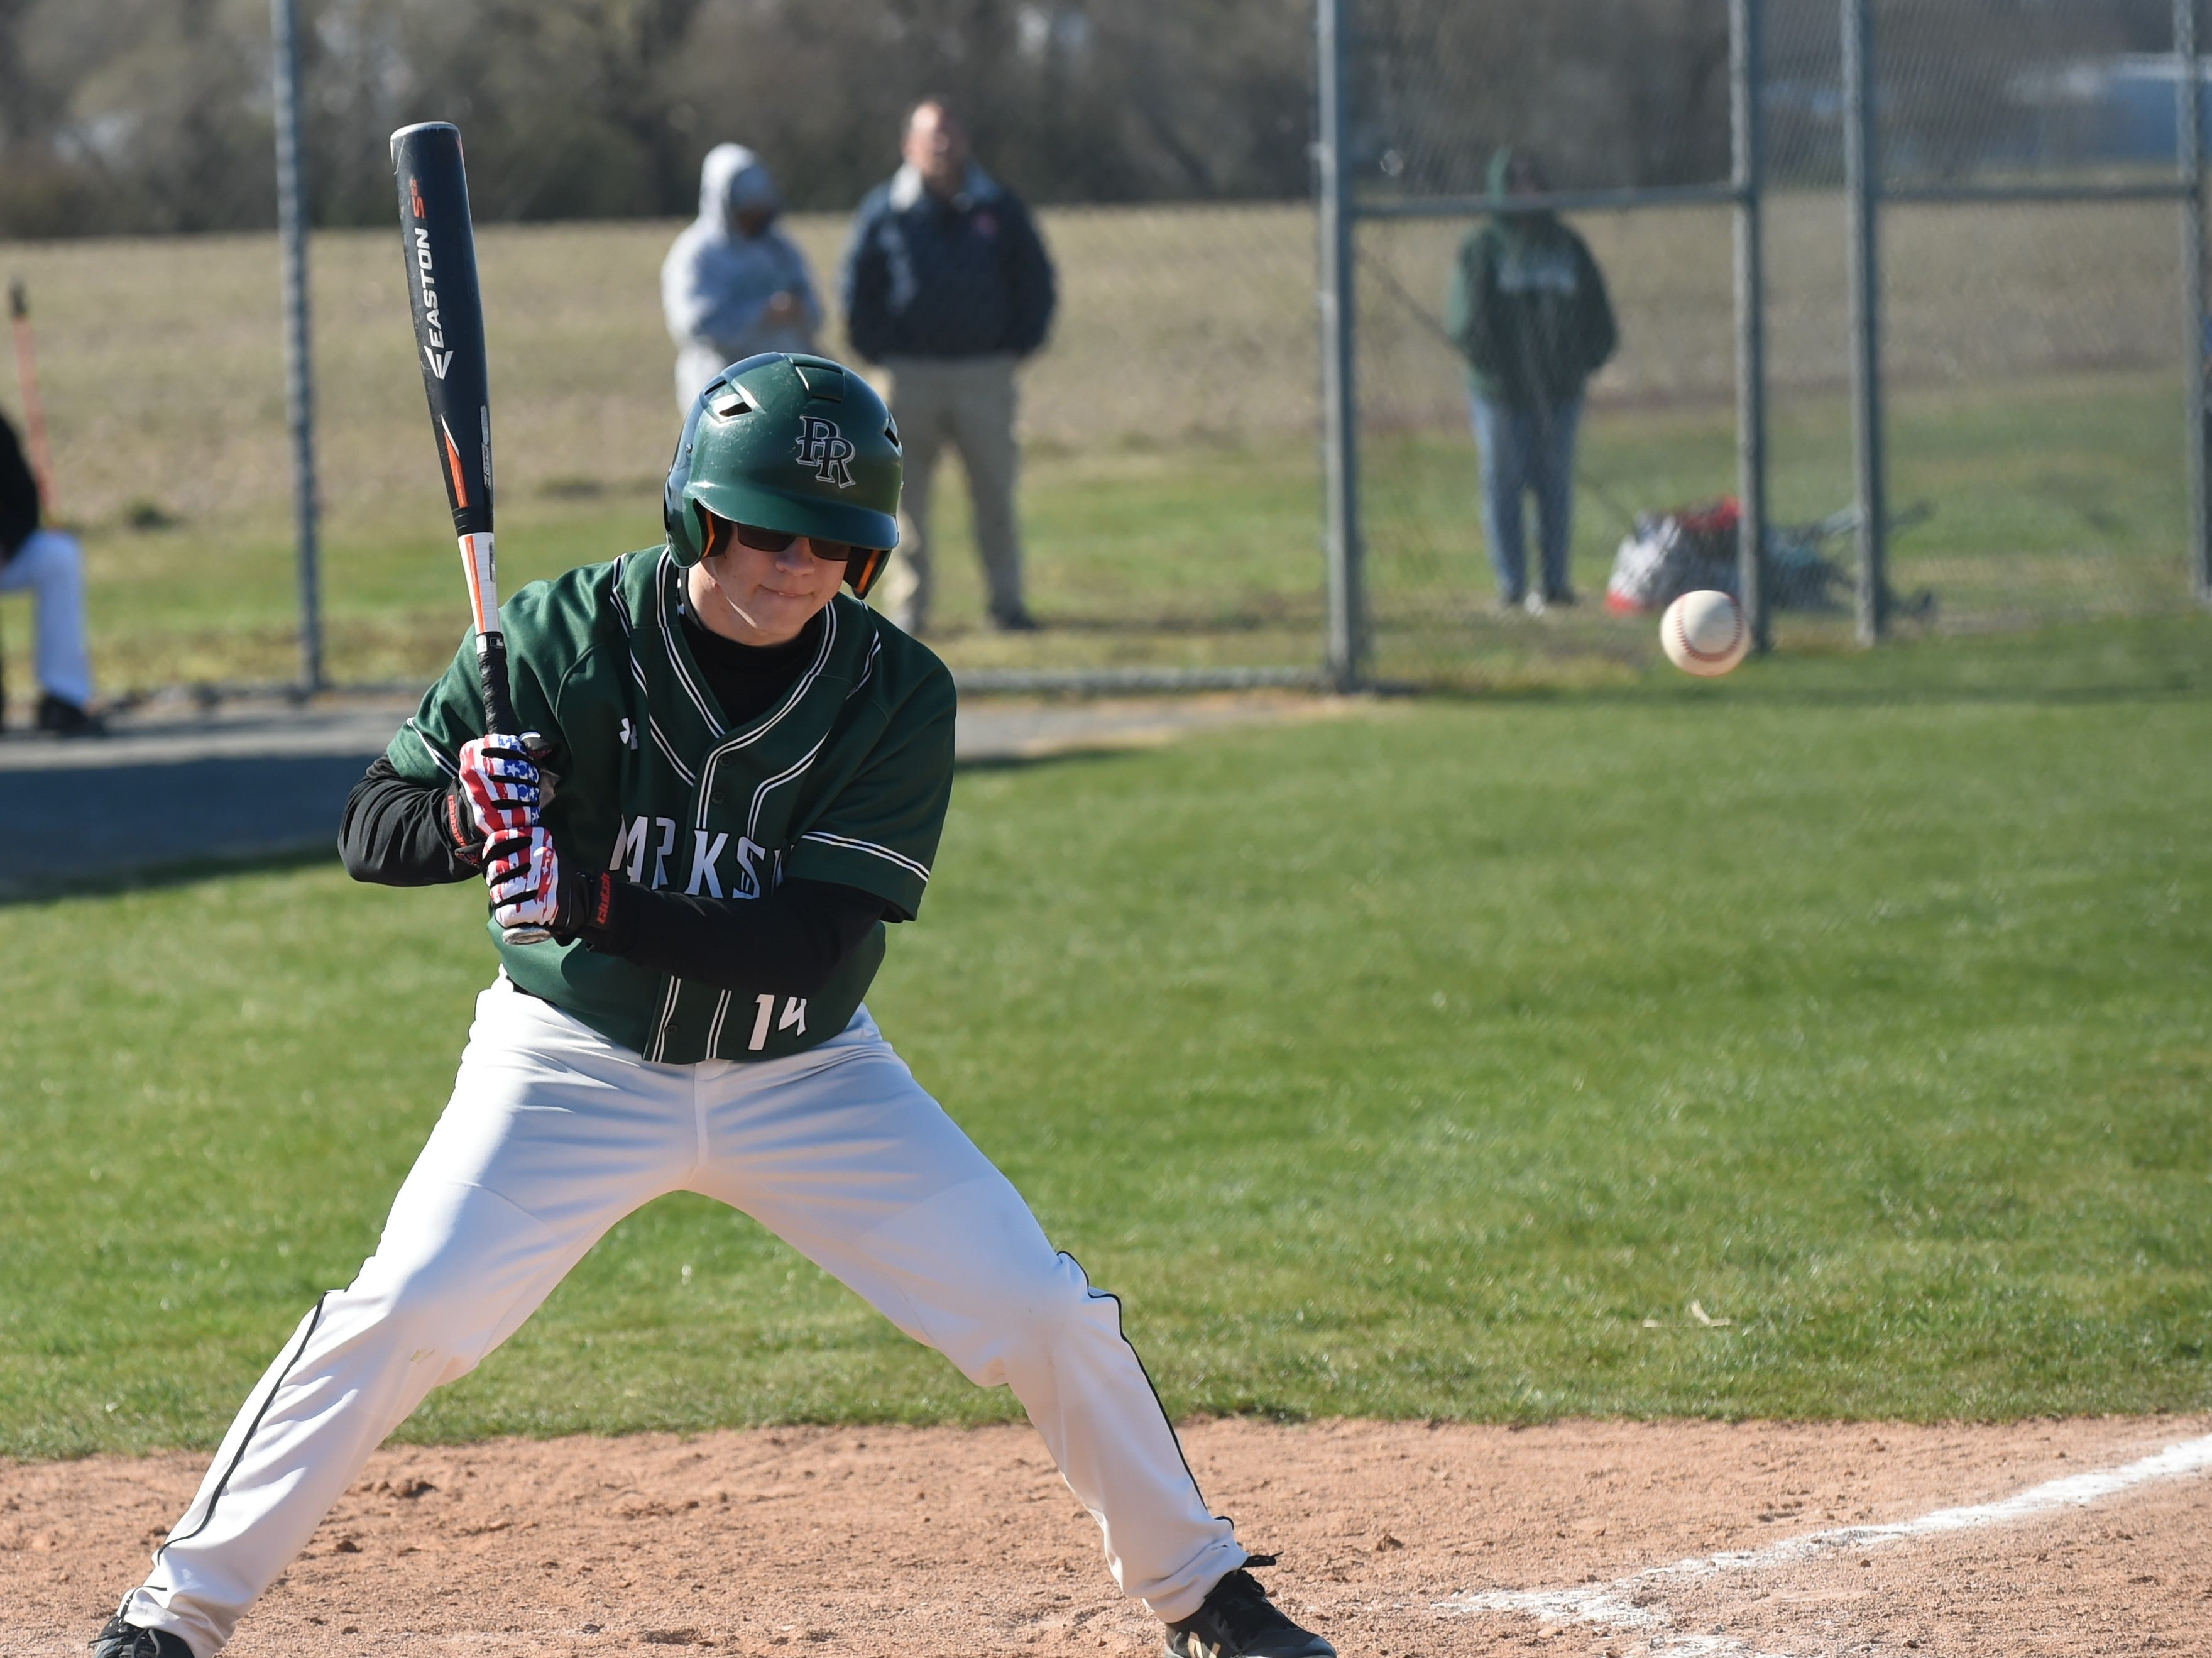 Parkside's Brandon Underwood watches a high ball fly past against Stephen Decatur on Wednesday, April 3, 2019.